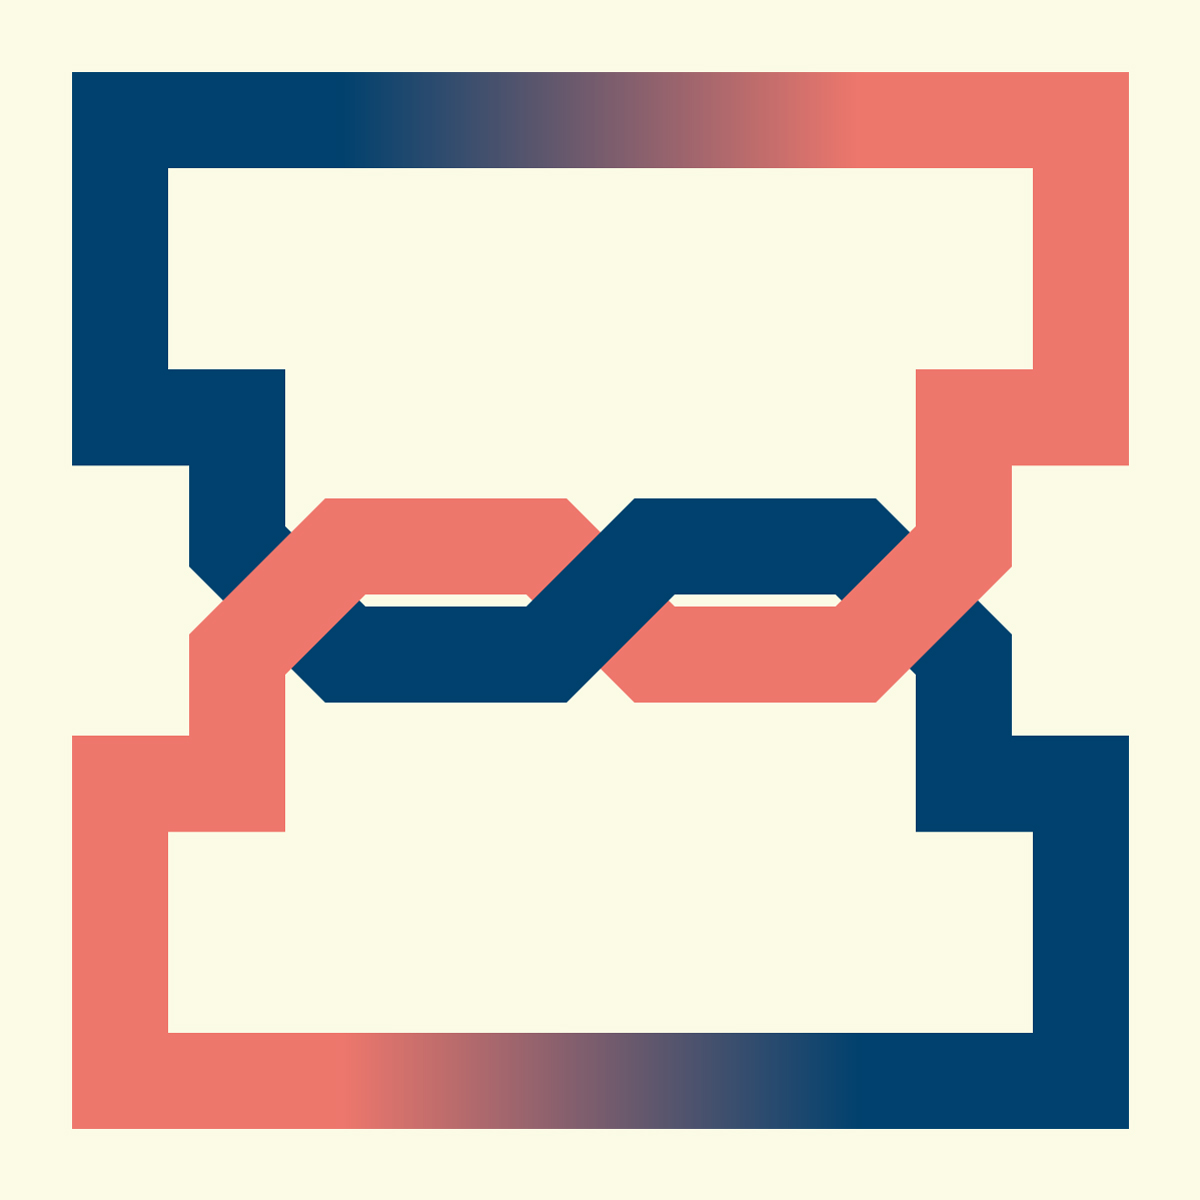 Illustration of the letter I as an infinite loop